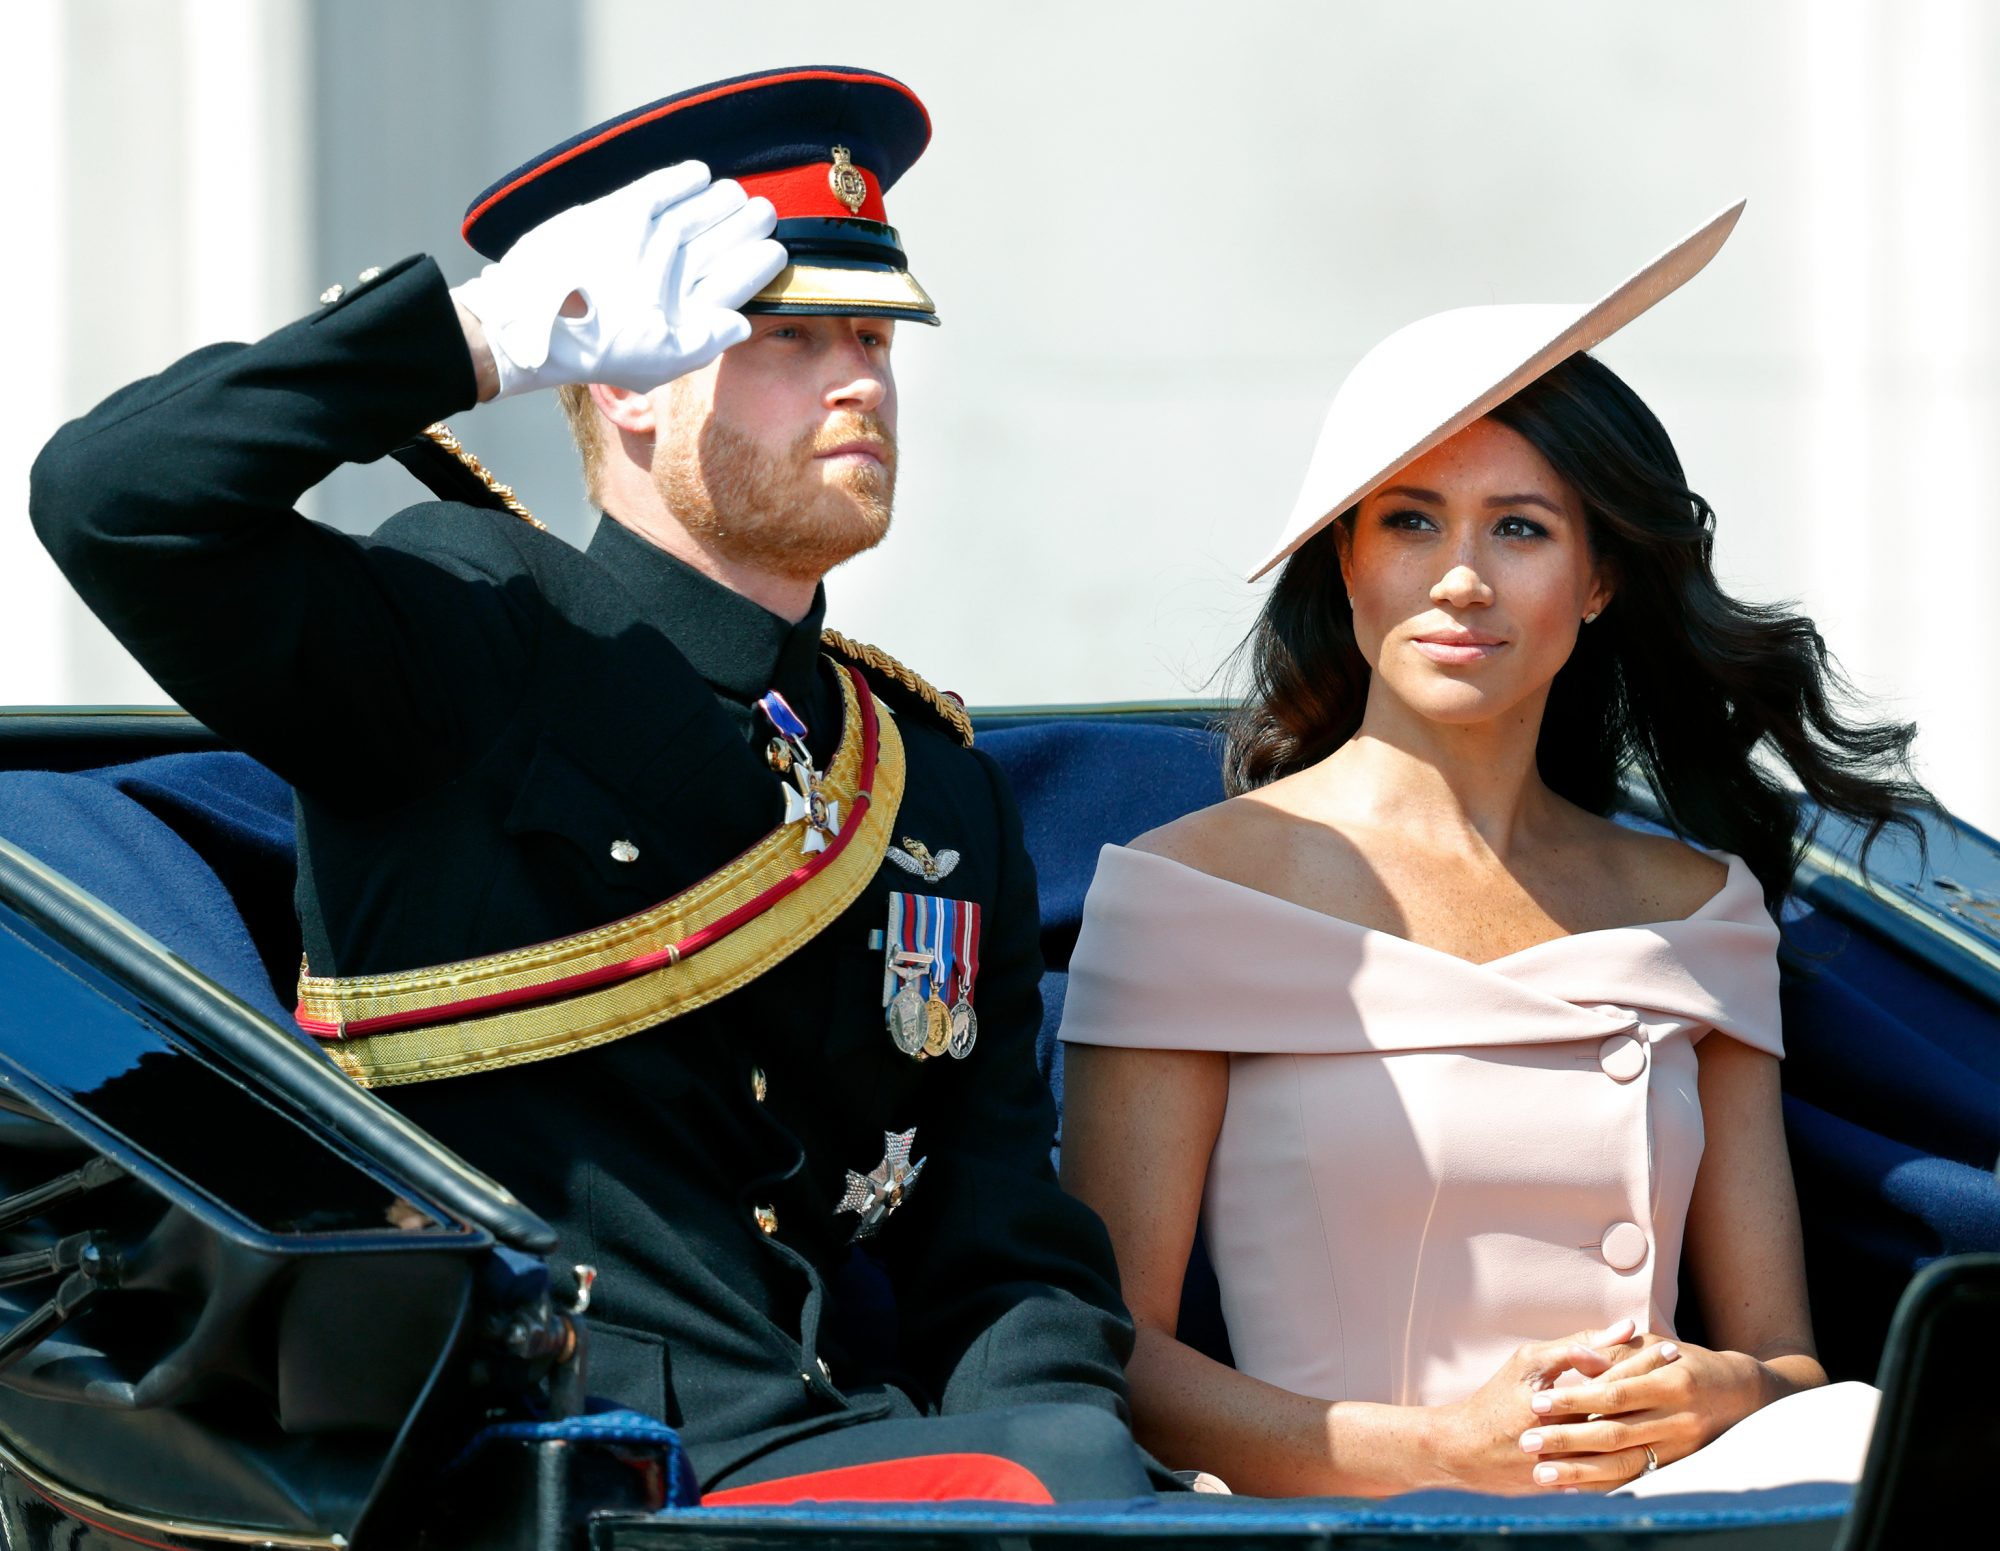 Prince Harry and Meghan Markle Trooping The Colour 2018